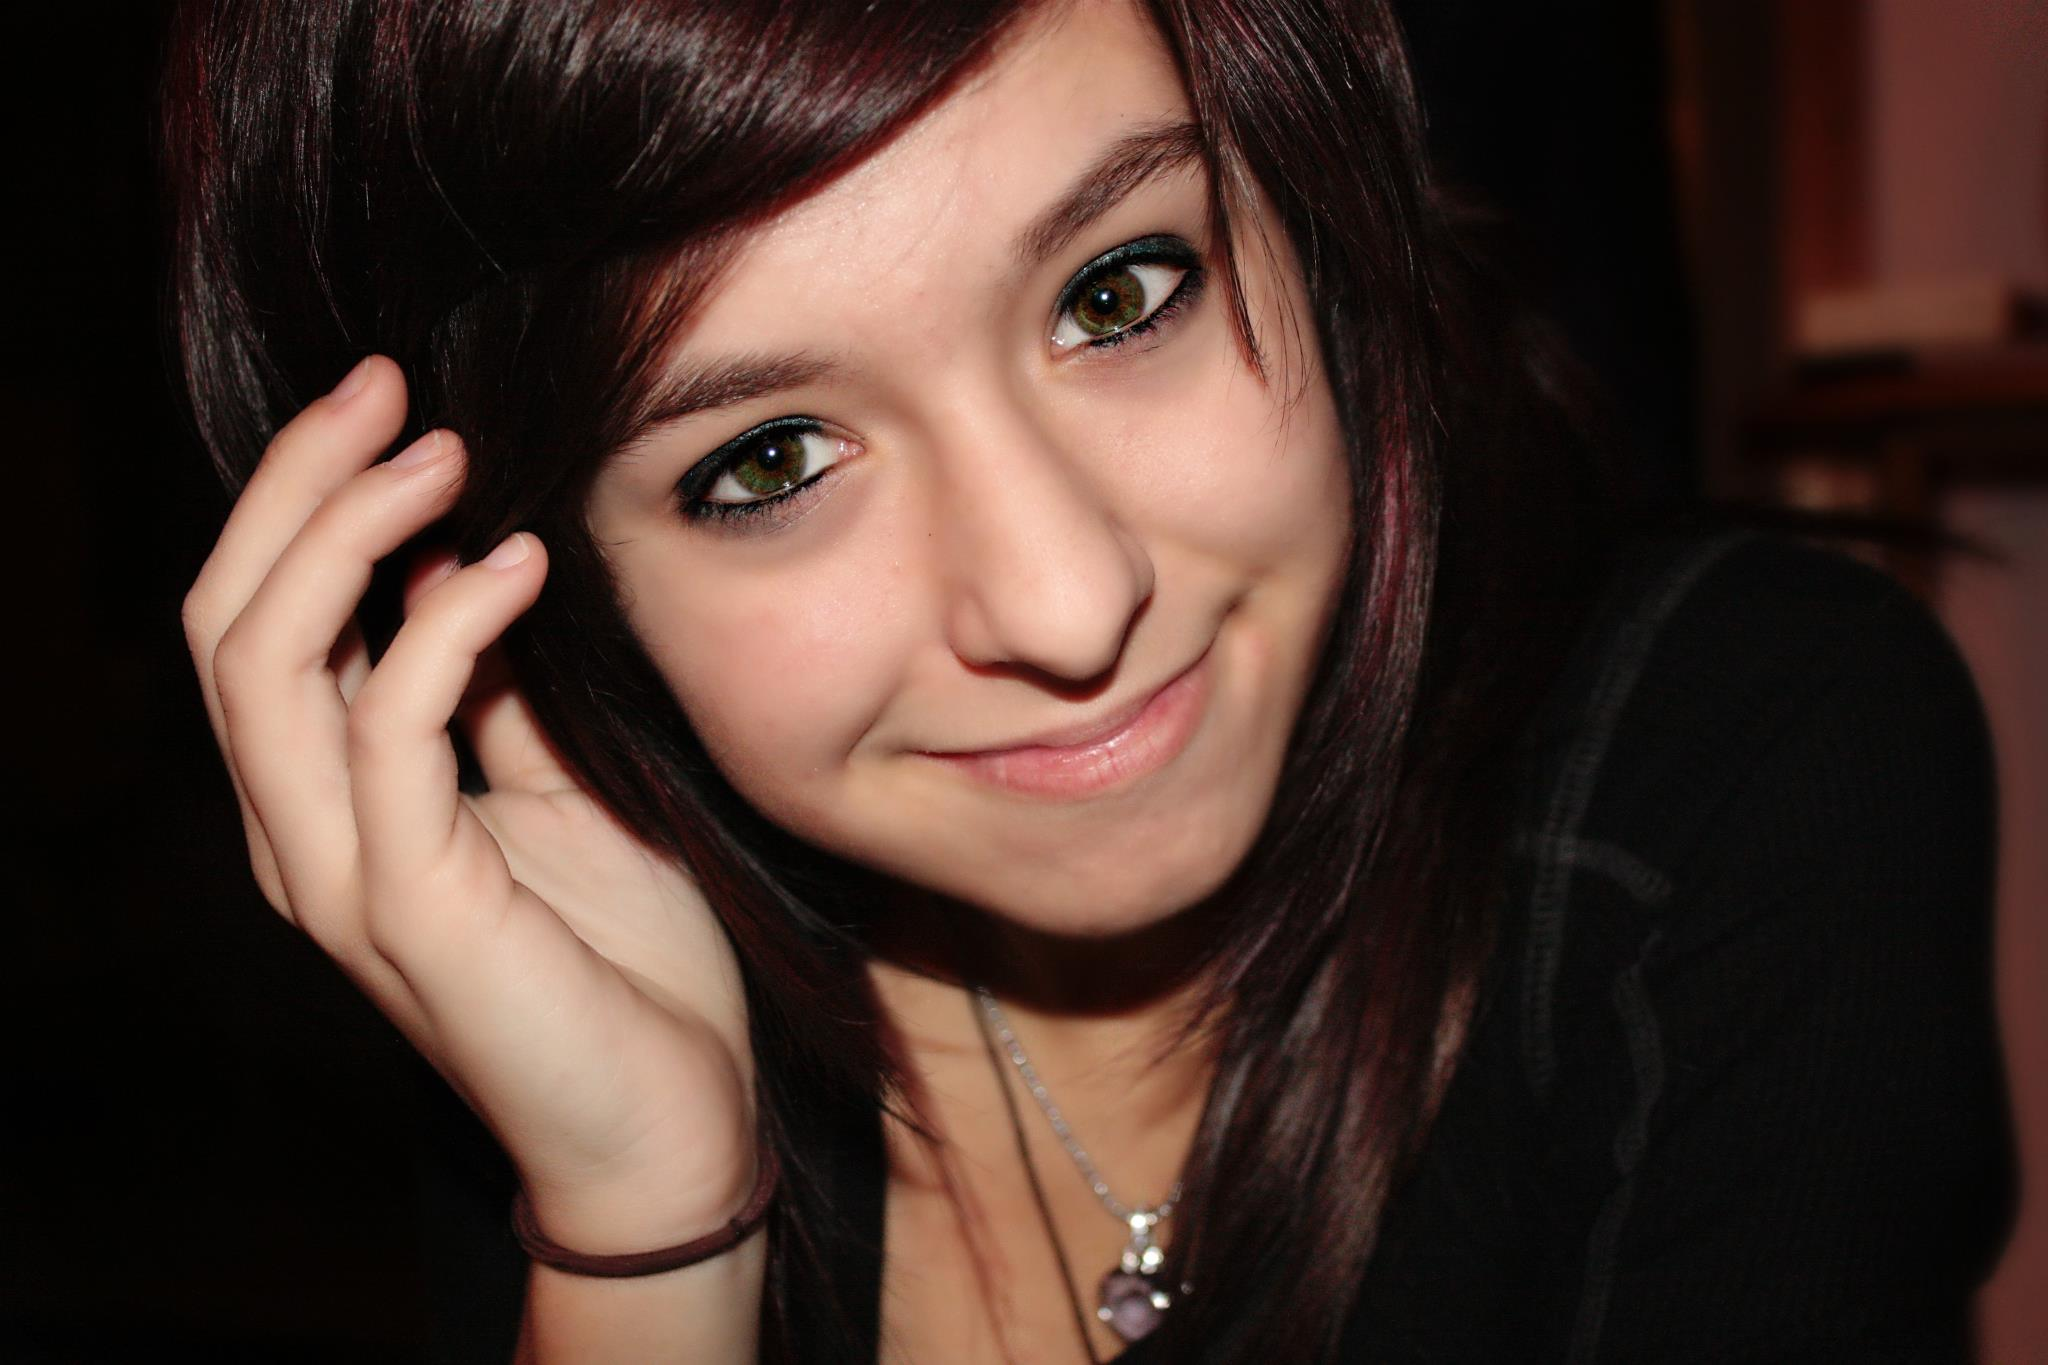 Christina Grimmie Wallpaper px ~ HDWallSource Women Christina grimmie HD Wallpapers, Desktop Backgrounds, Mobile 2048x1365